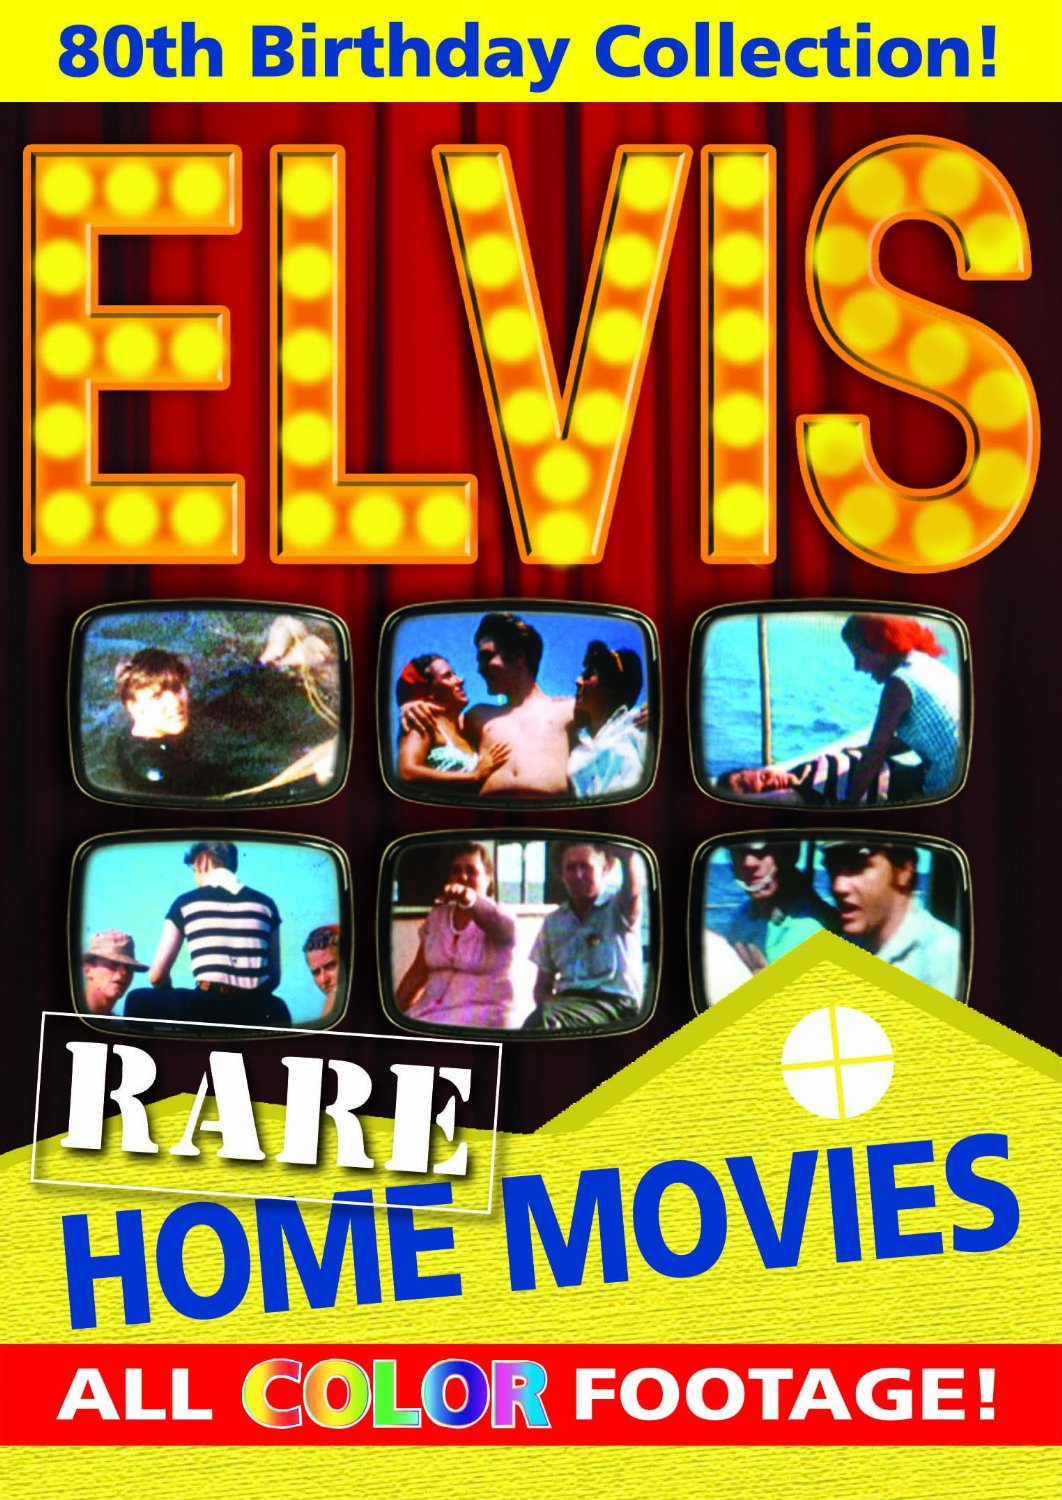 Elvis Home Movies